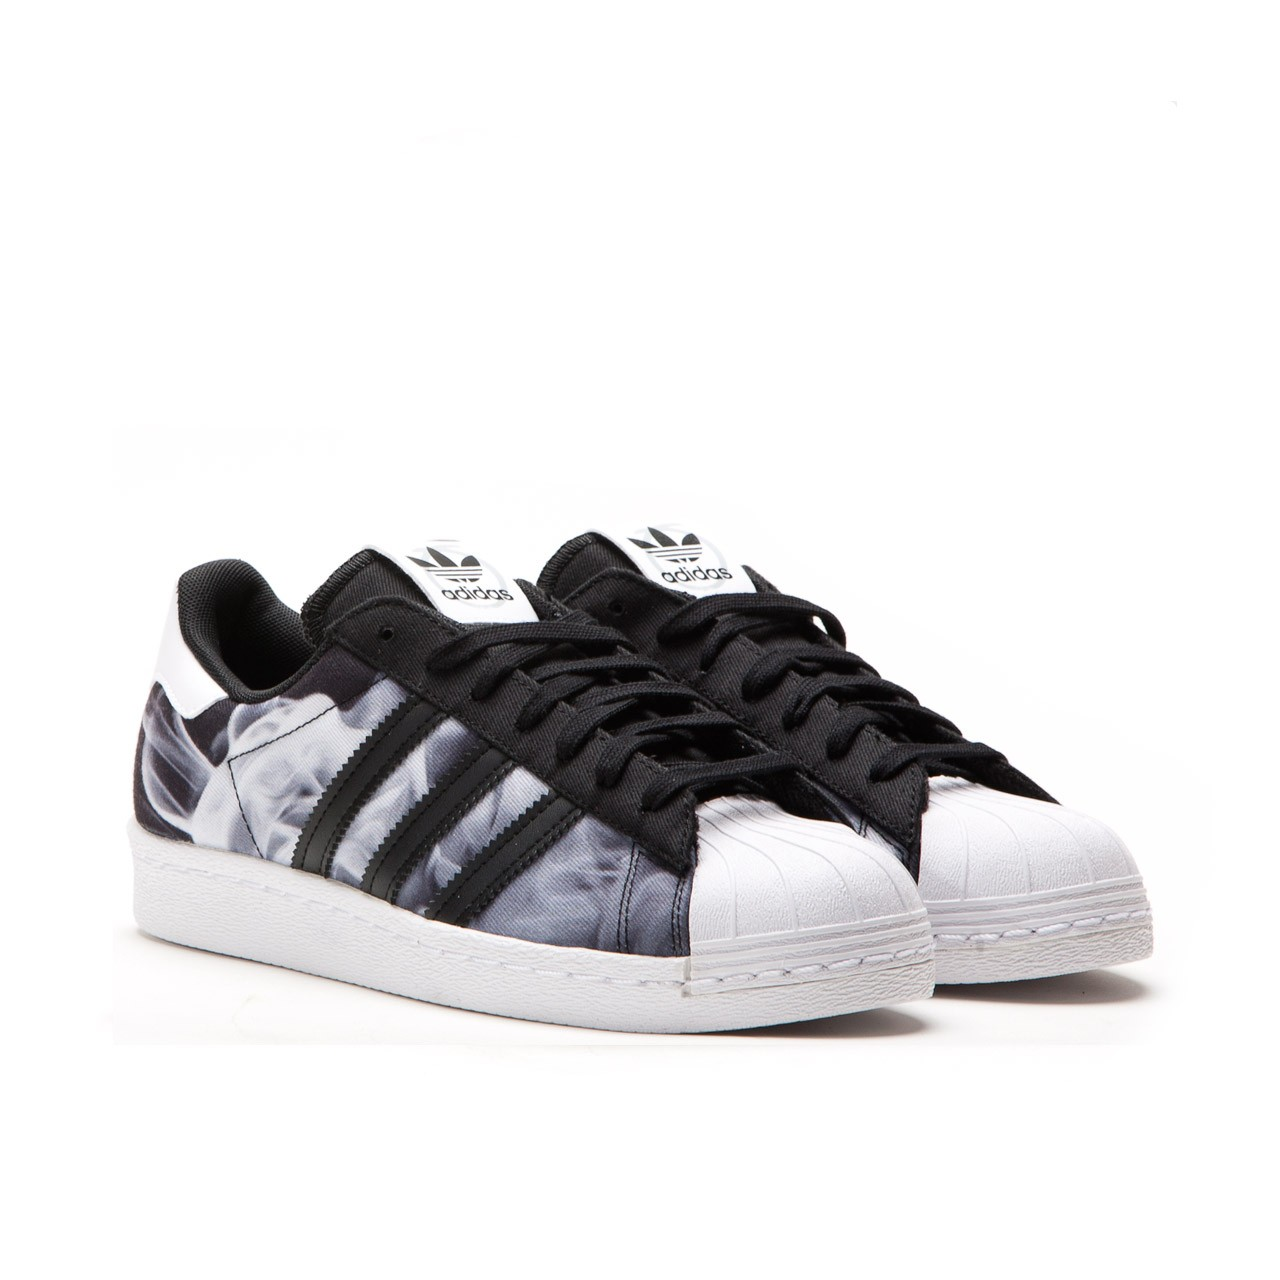 adidas x rita ora shoes off 57% scop